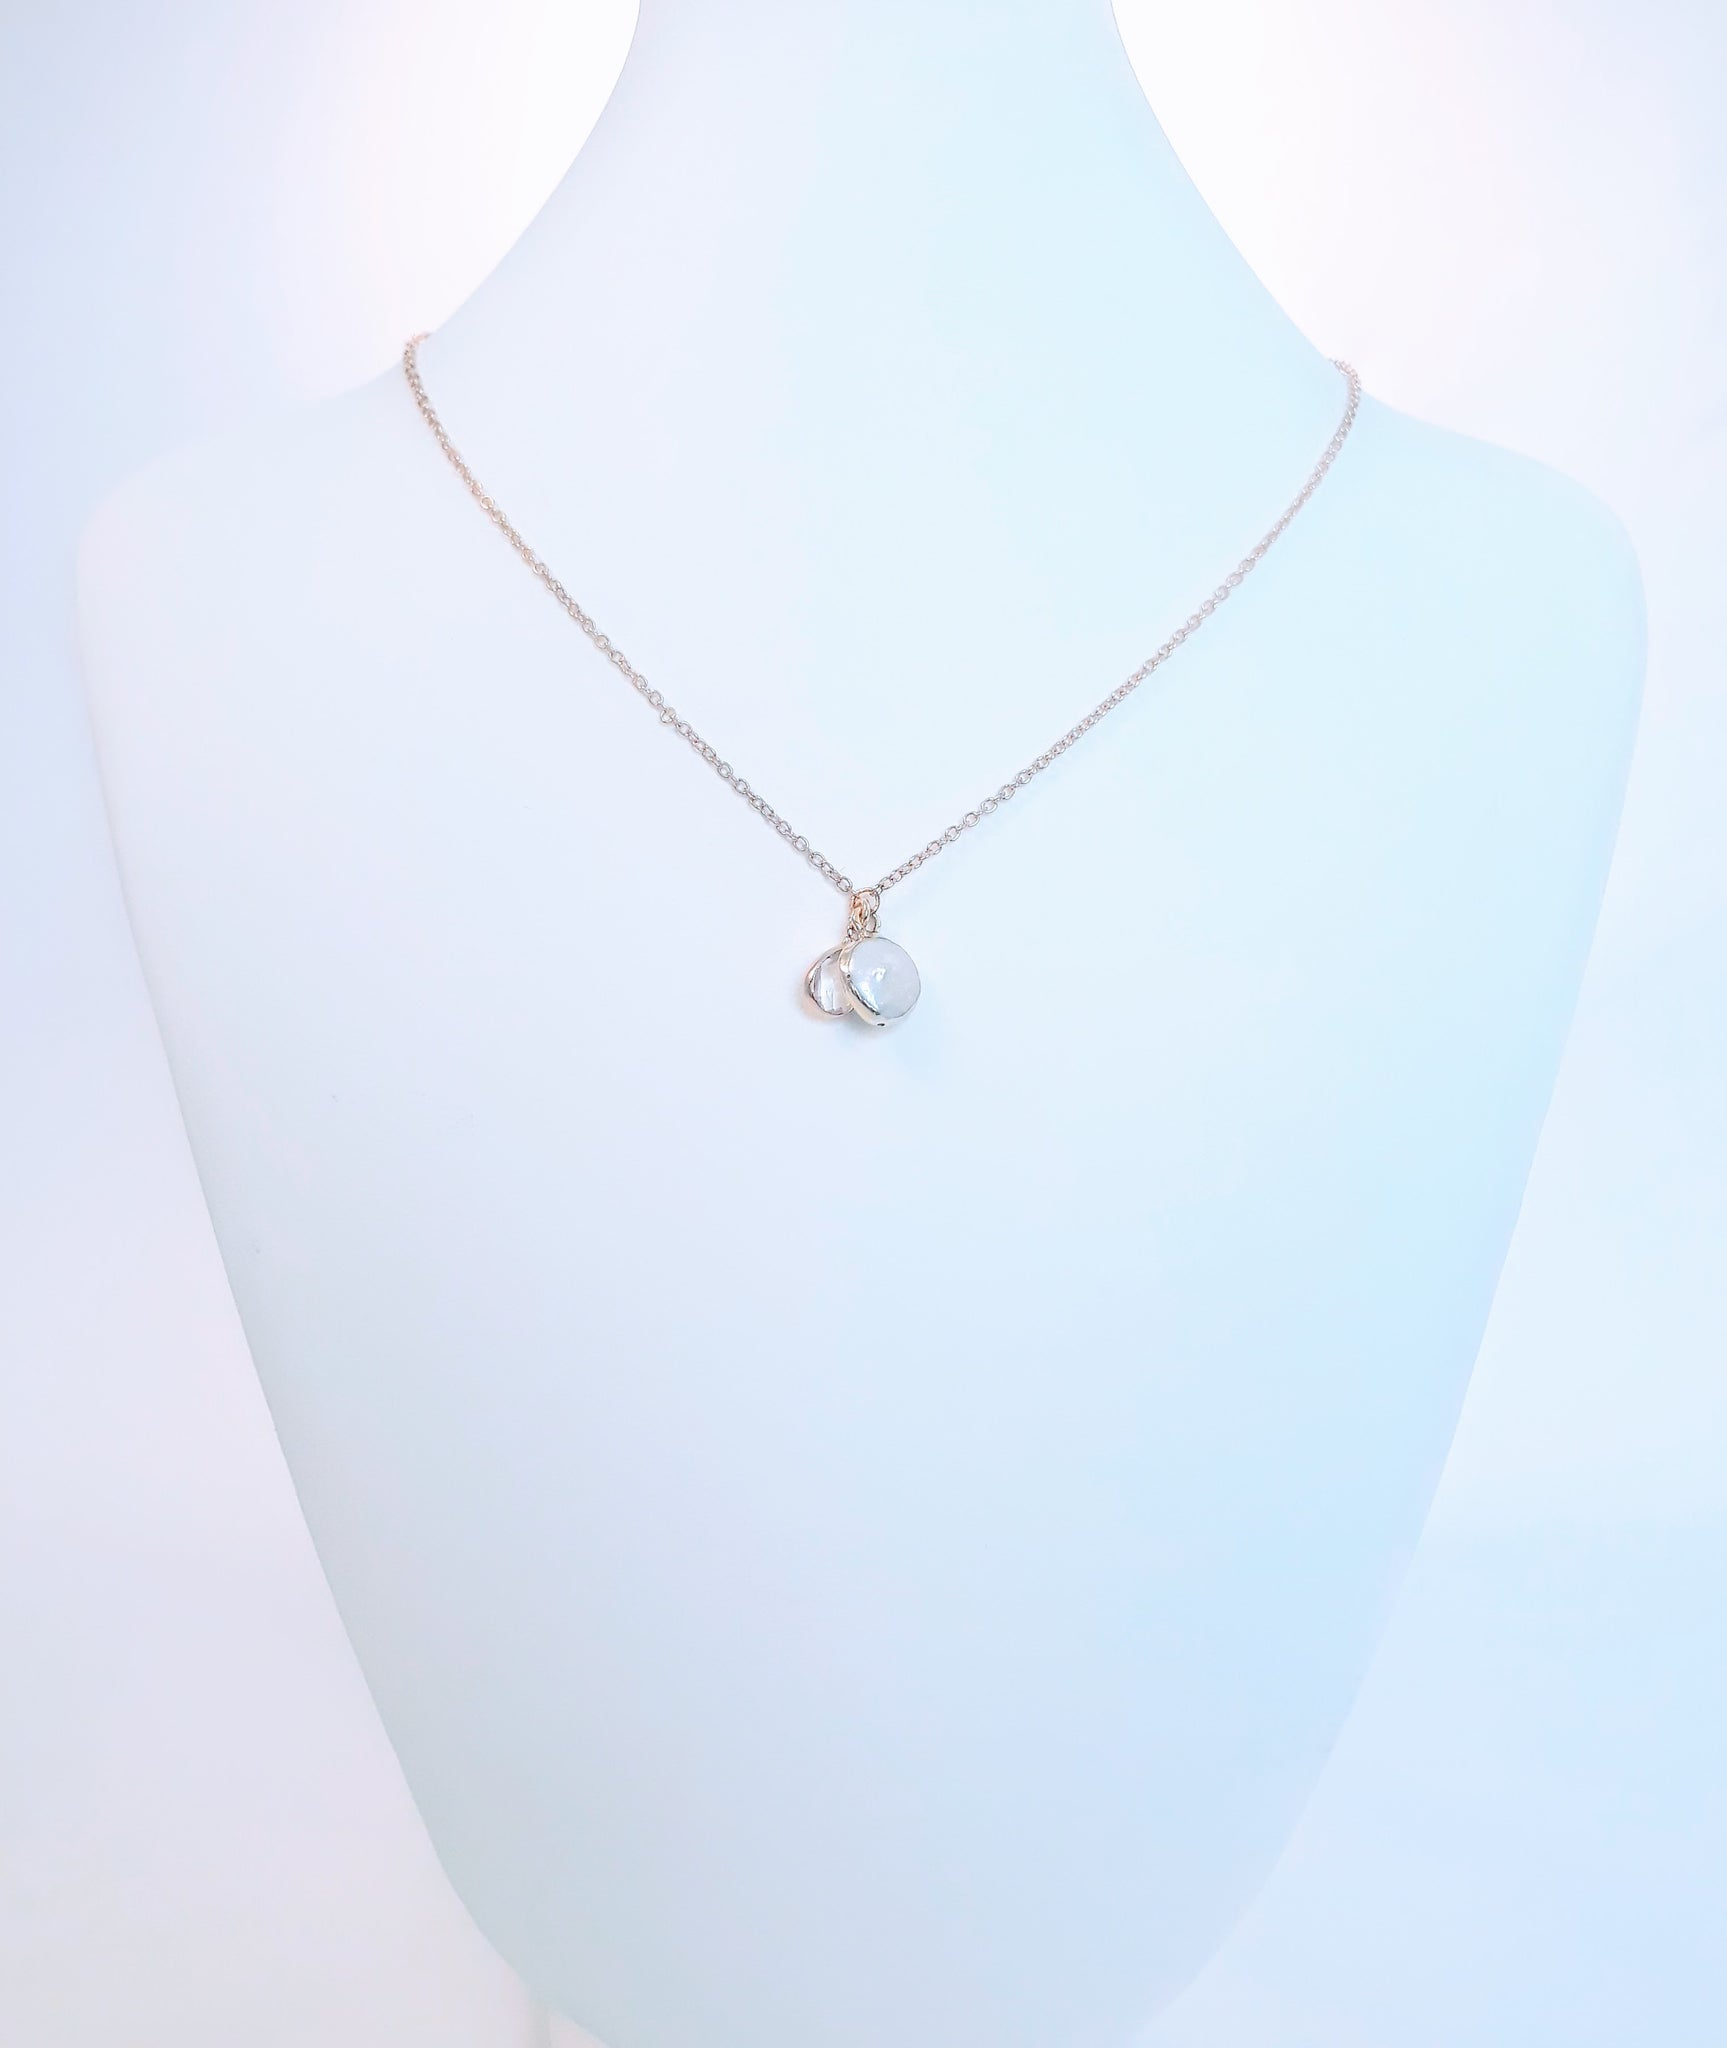 The Dainty Pearl Pendant